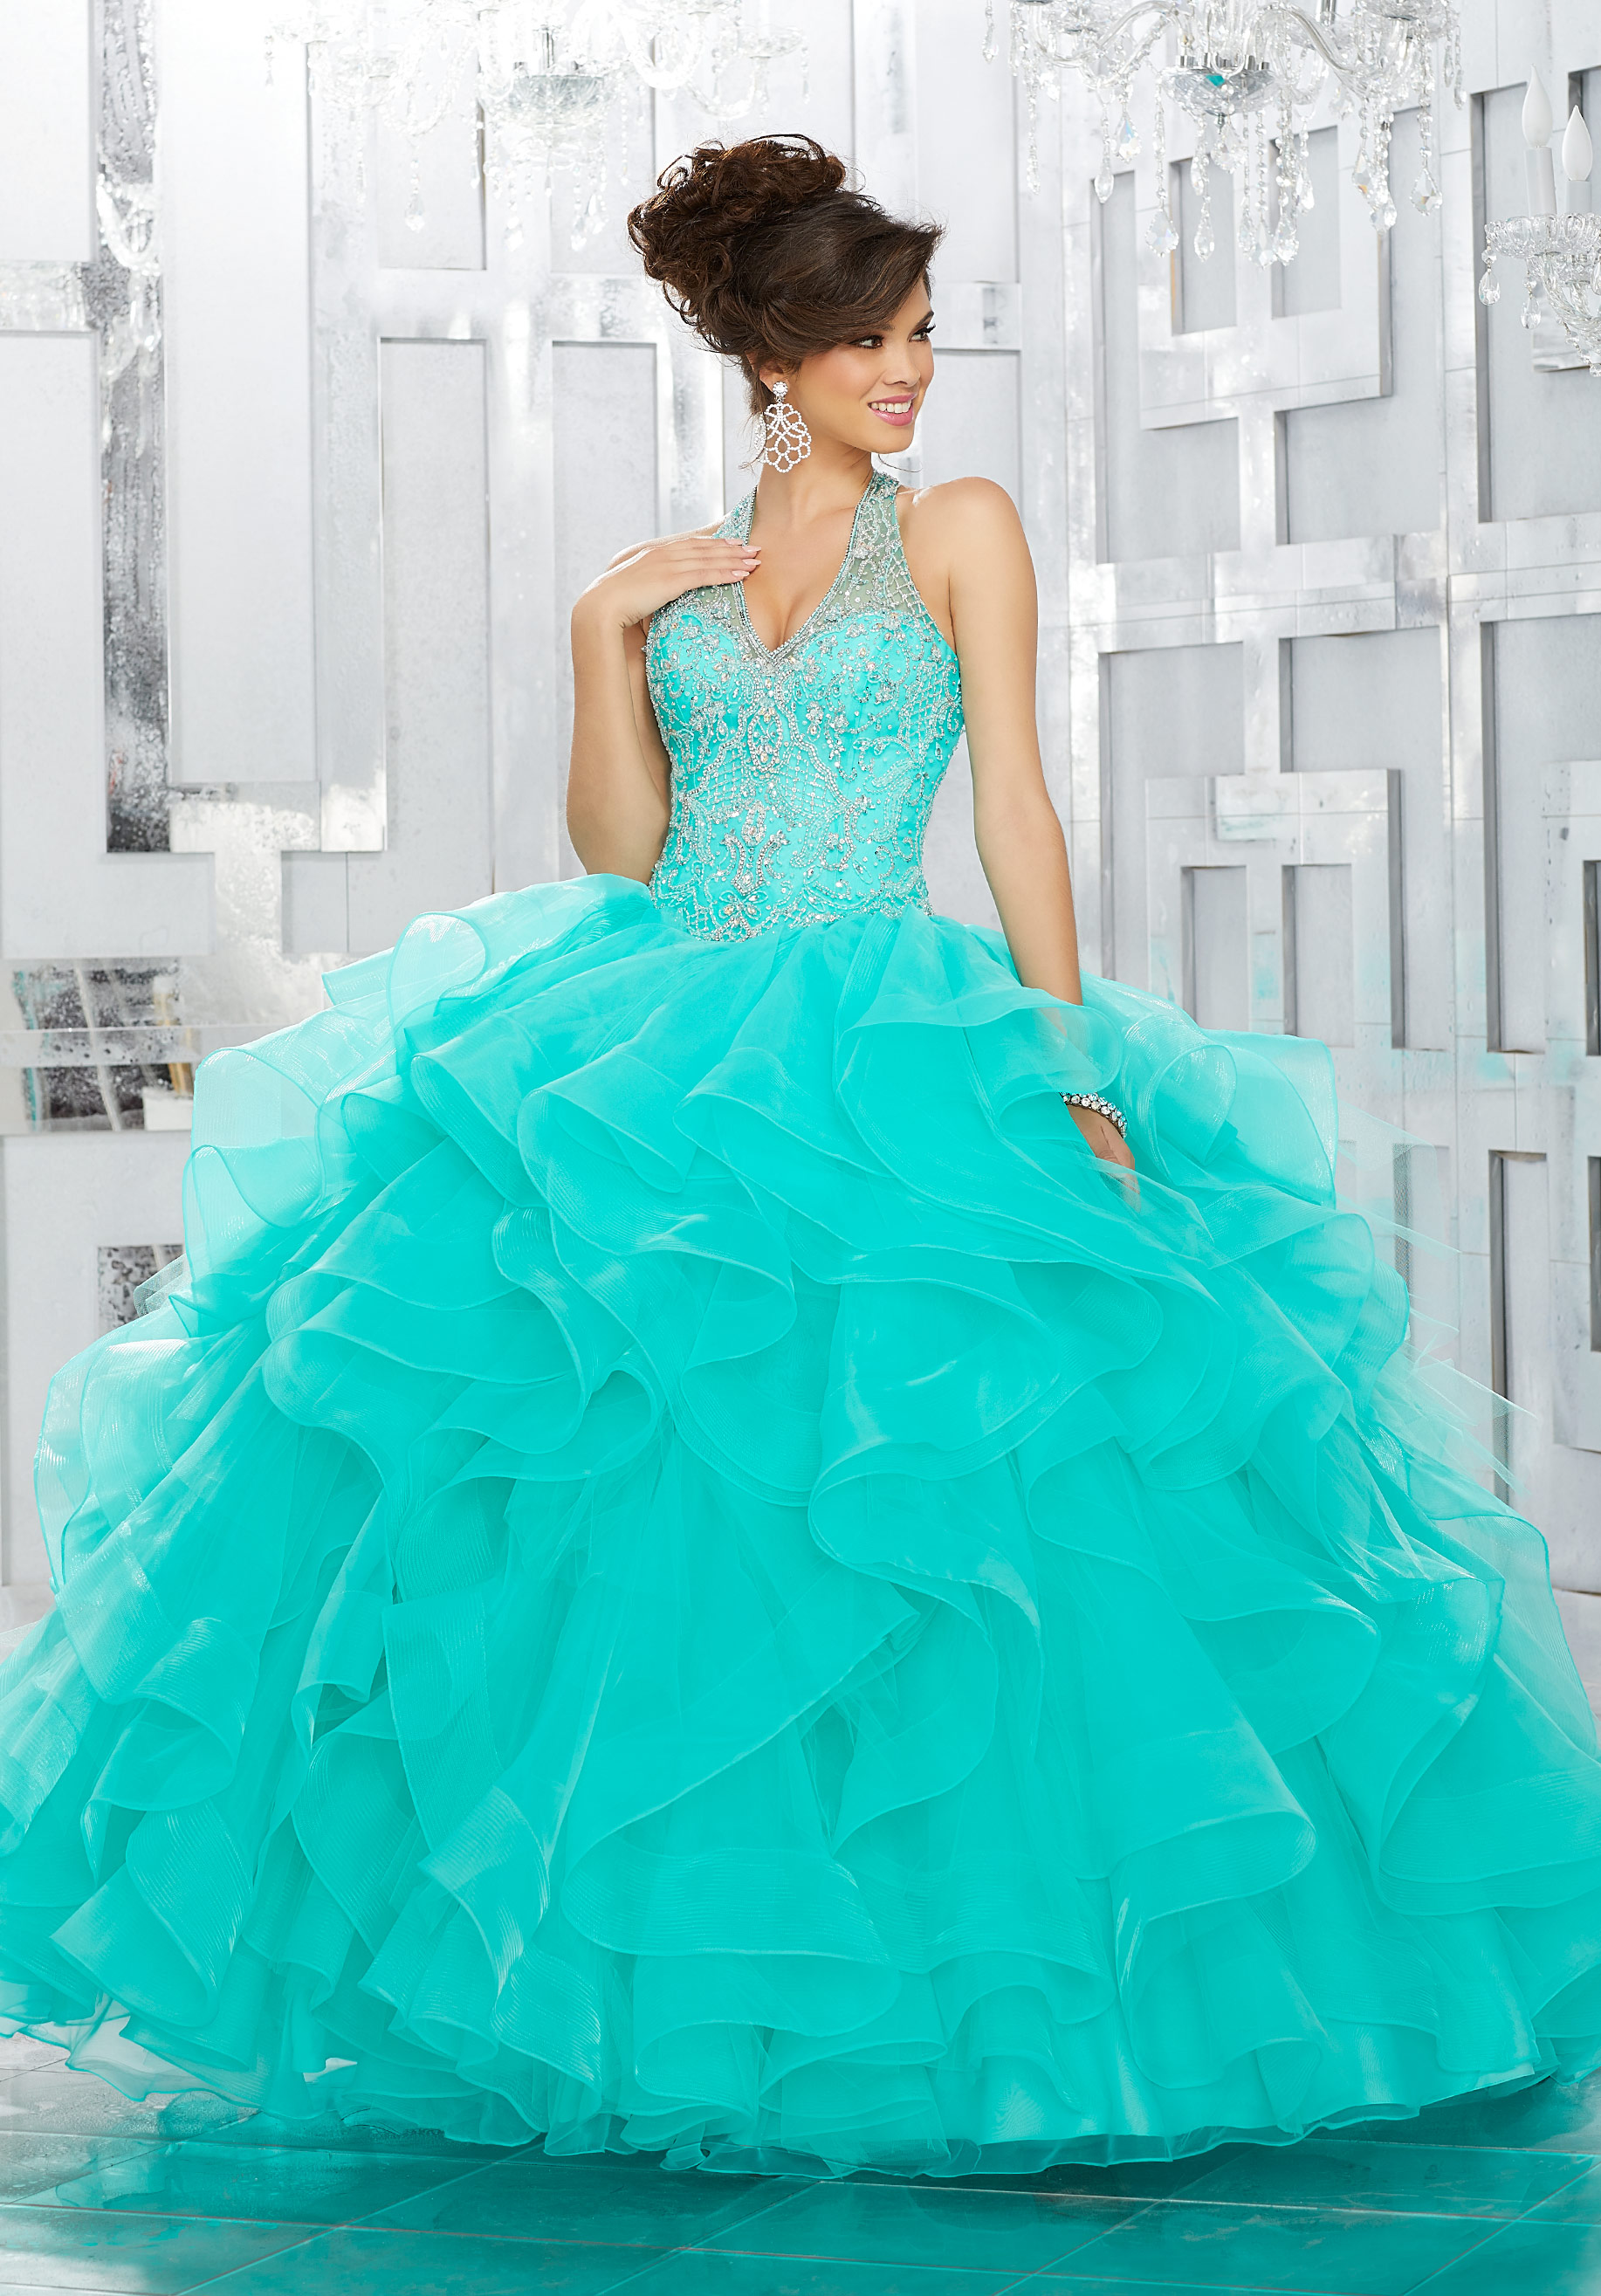 43c378b73 Crystal Beaded Bodice with Flounced Organza Ball Gown Skirt